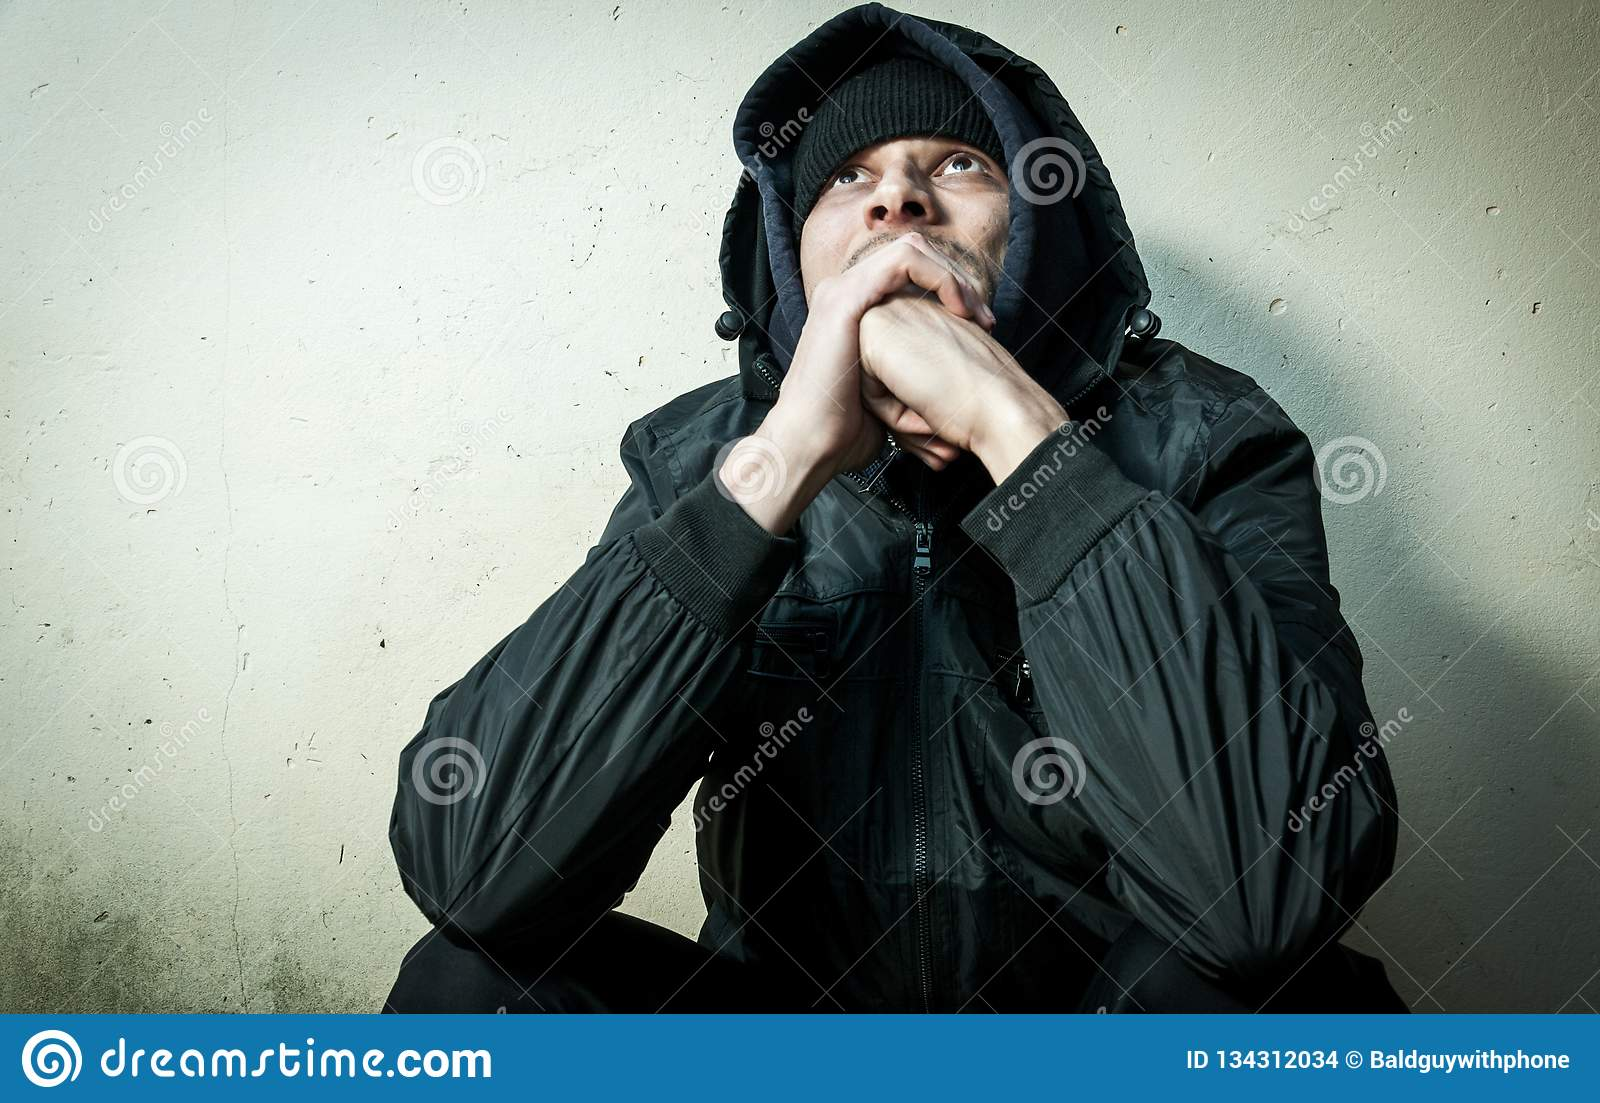 Homeless man drug and alcohol addict sitting alone and depressed on the street in winter clothes feeling anxious cold and lonely,